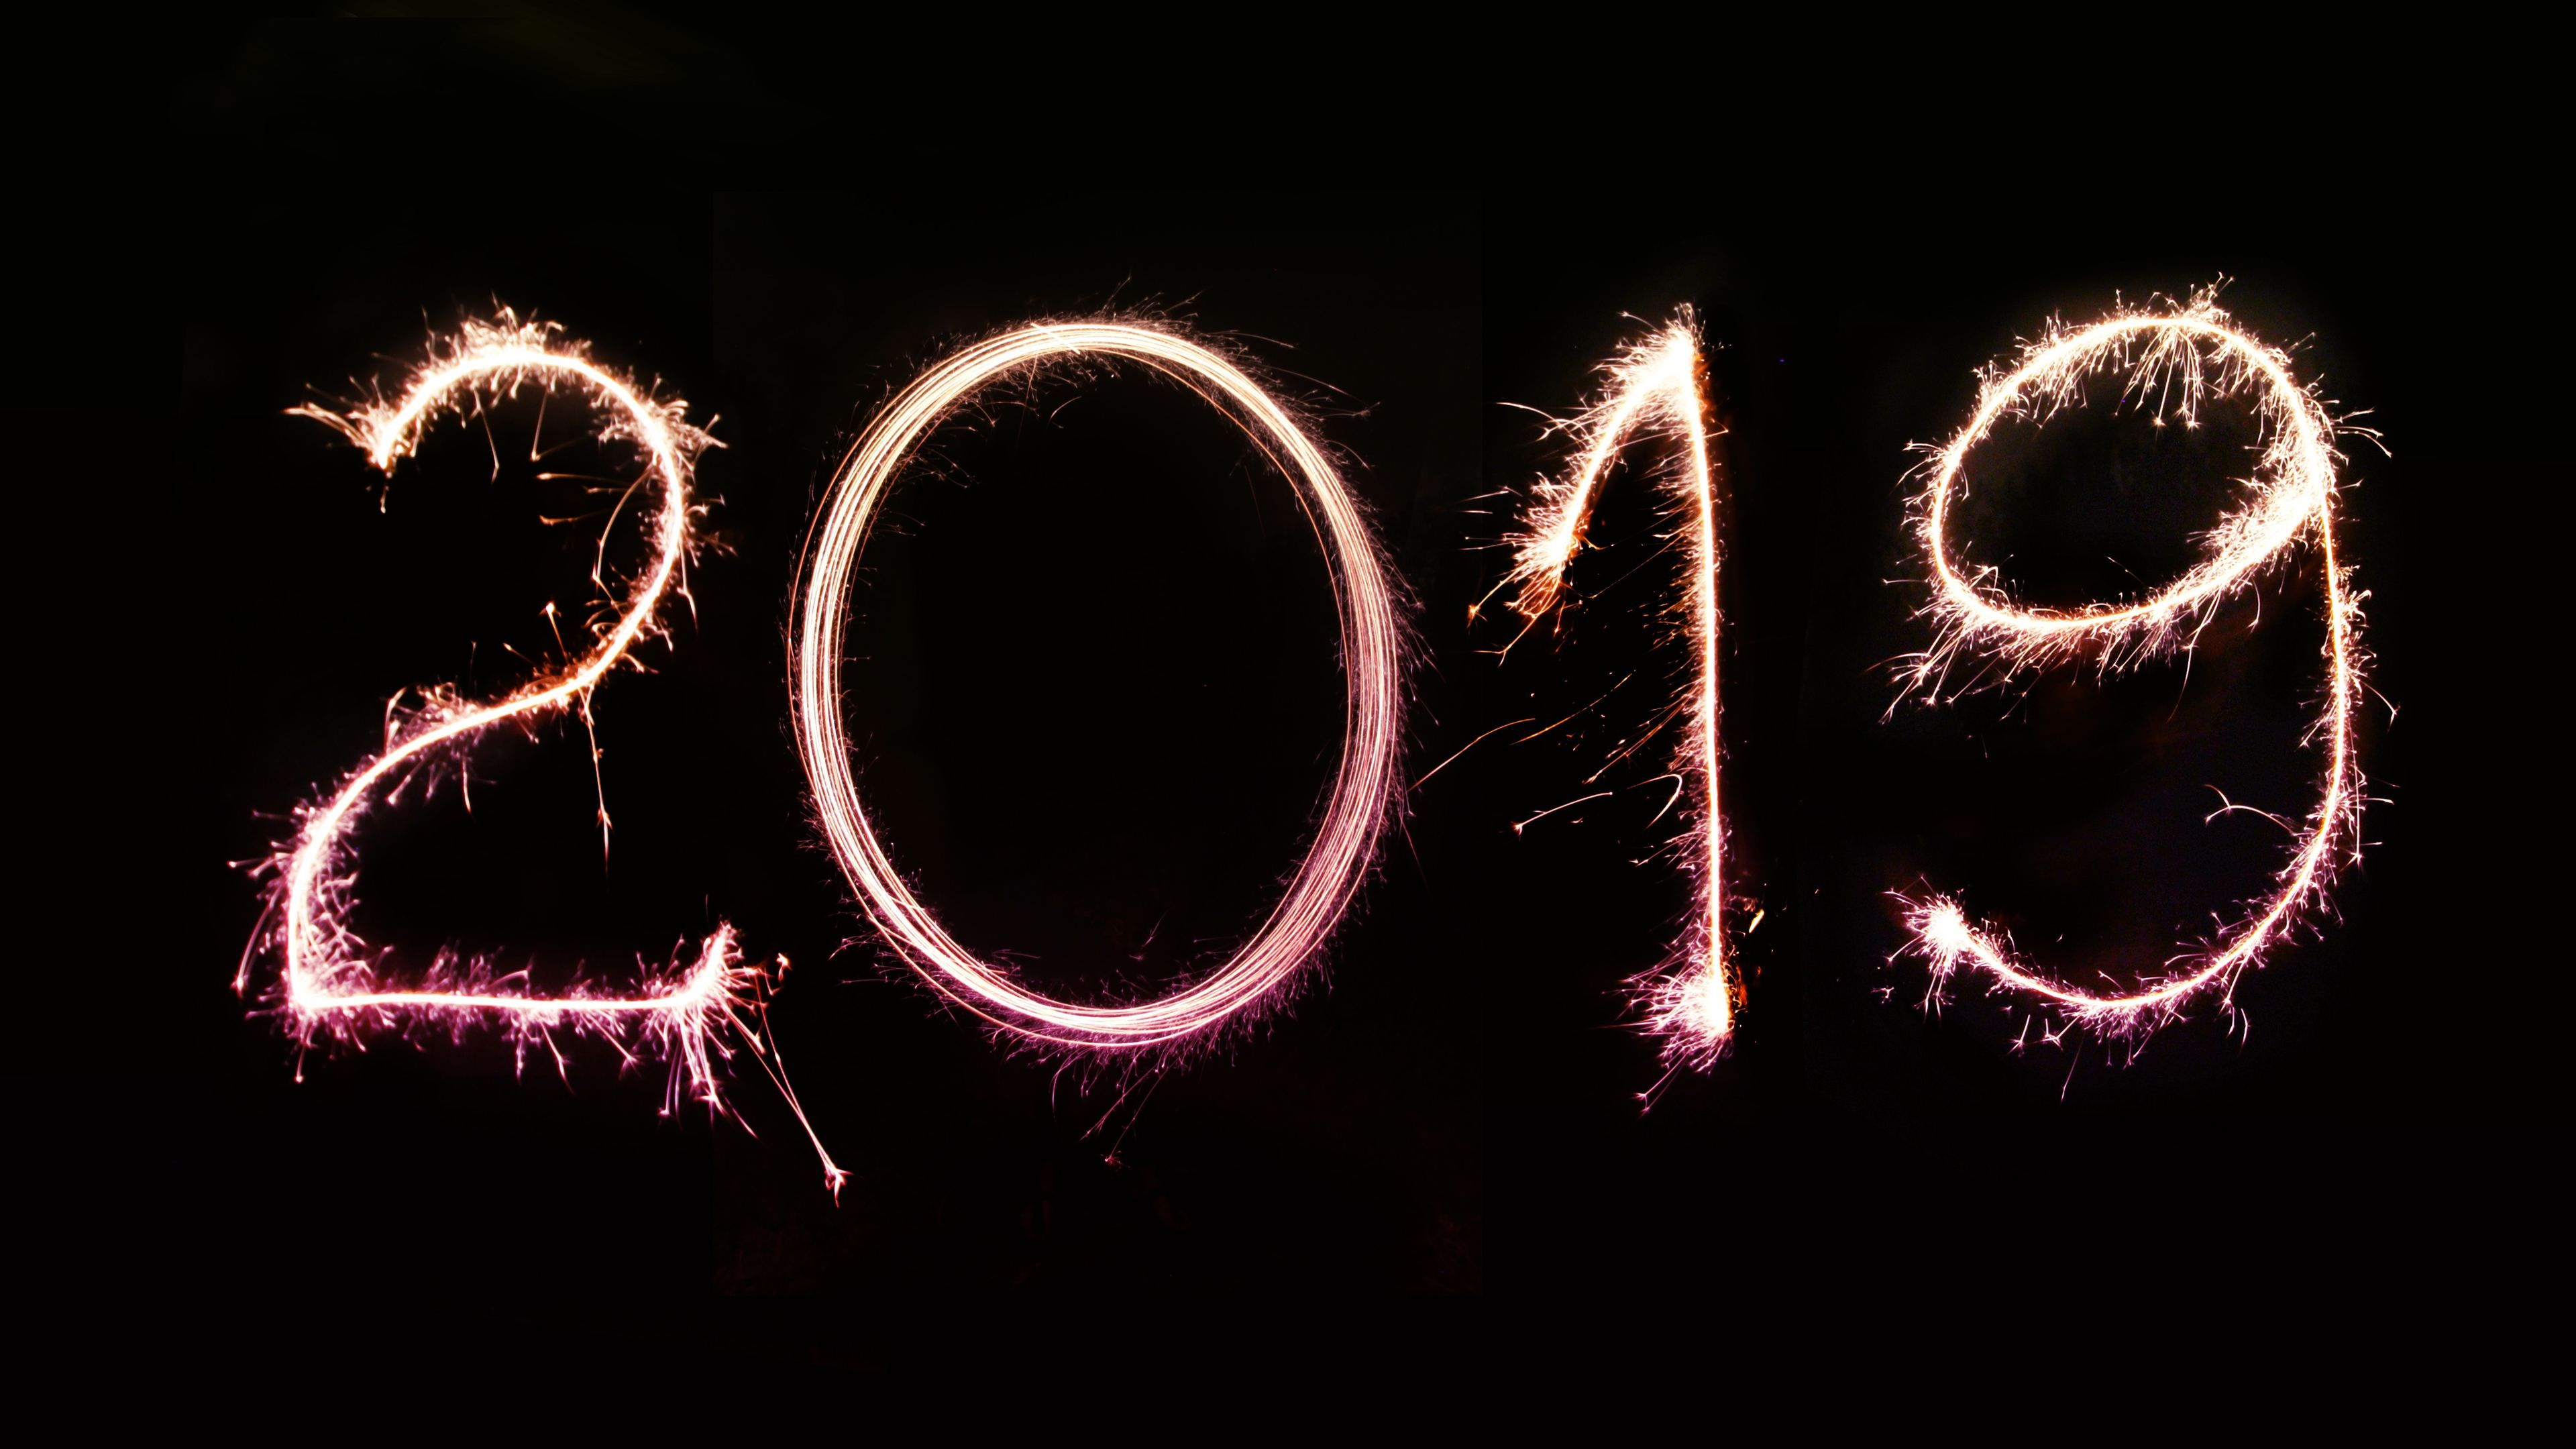 Happy New Year 2019 4k hdwallpapers, happy new year 2019